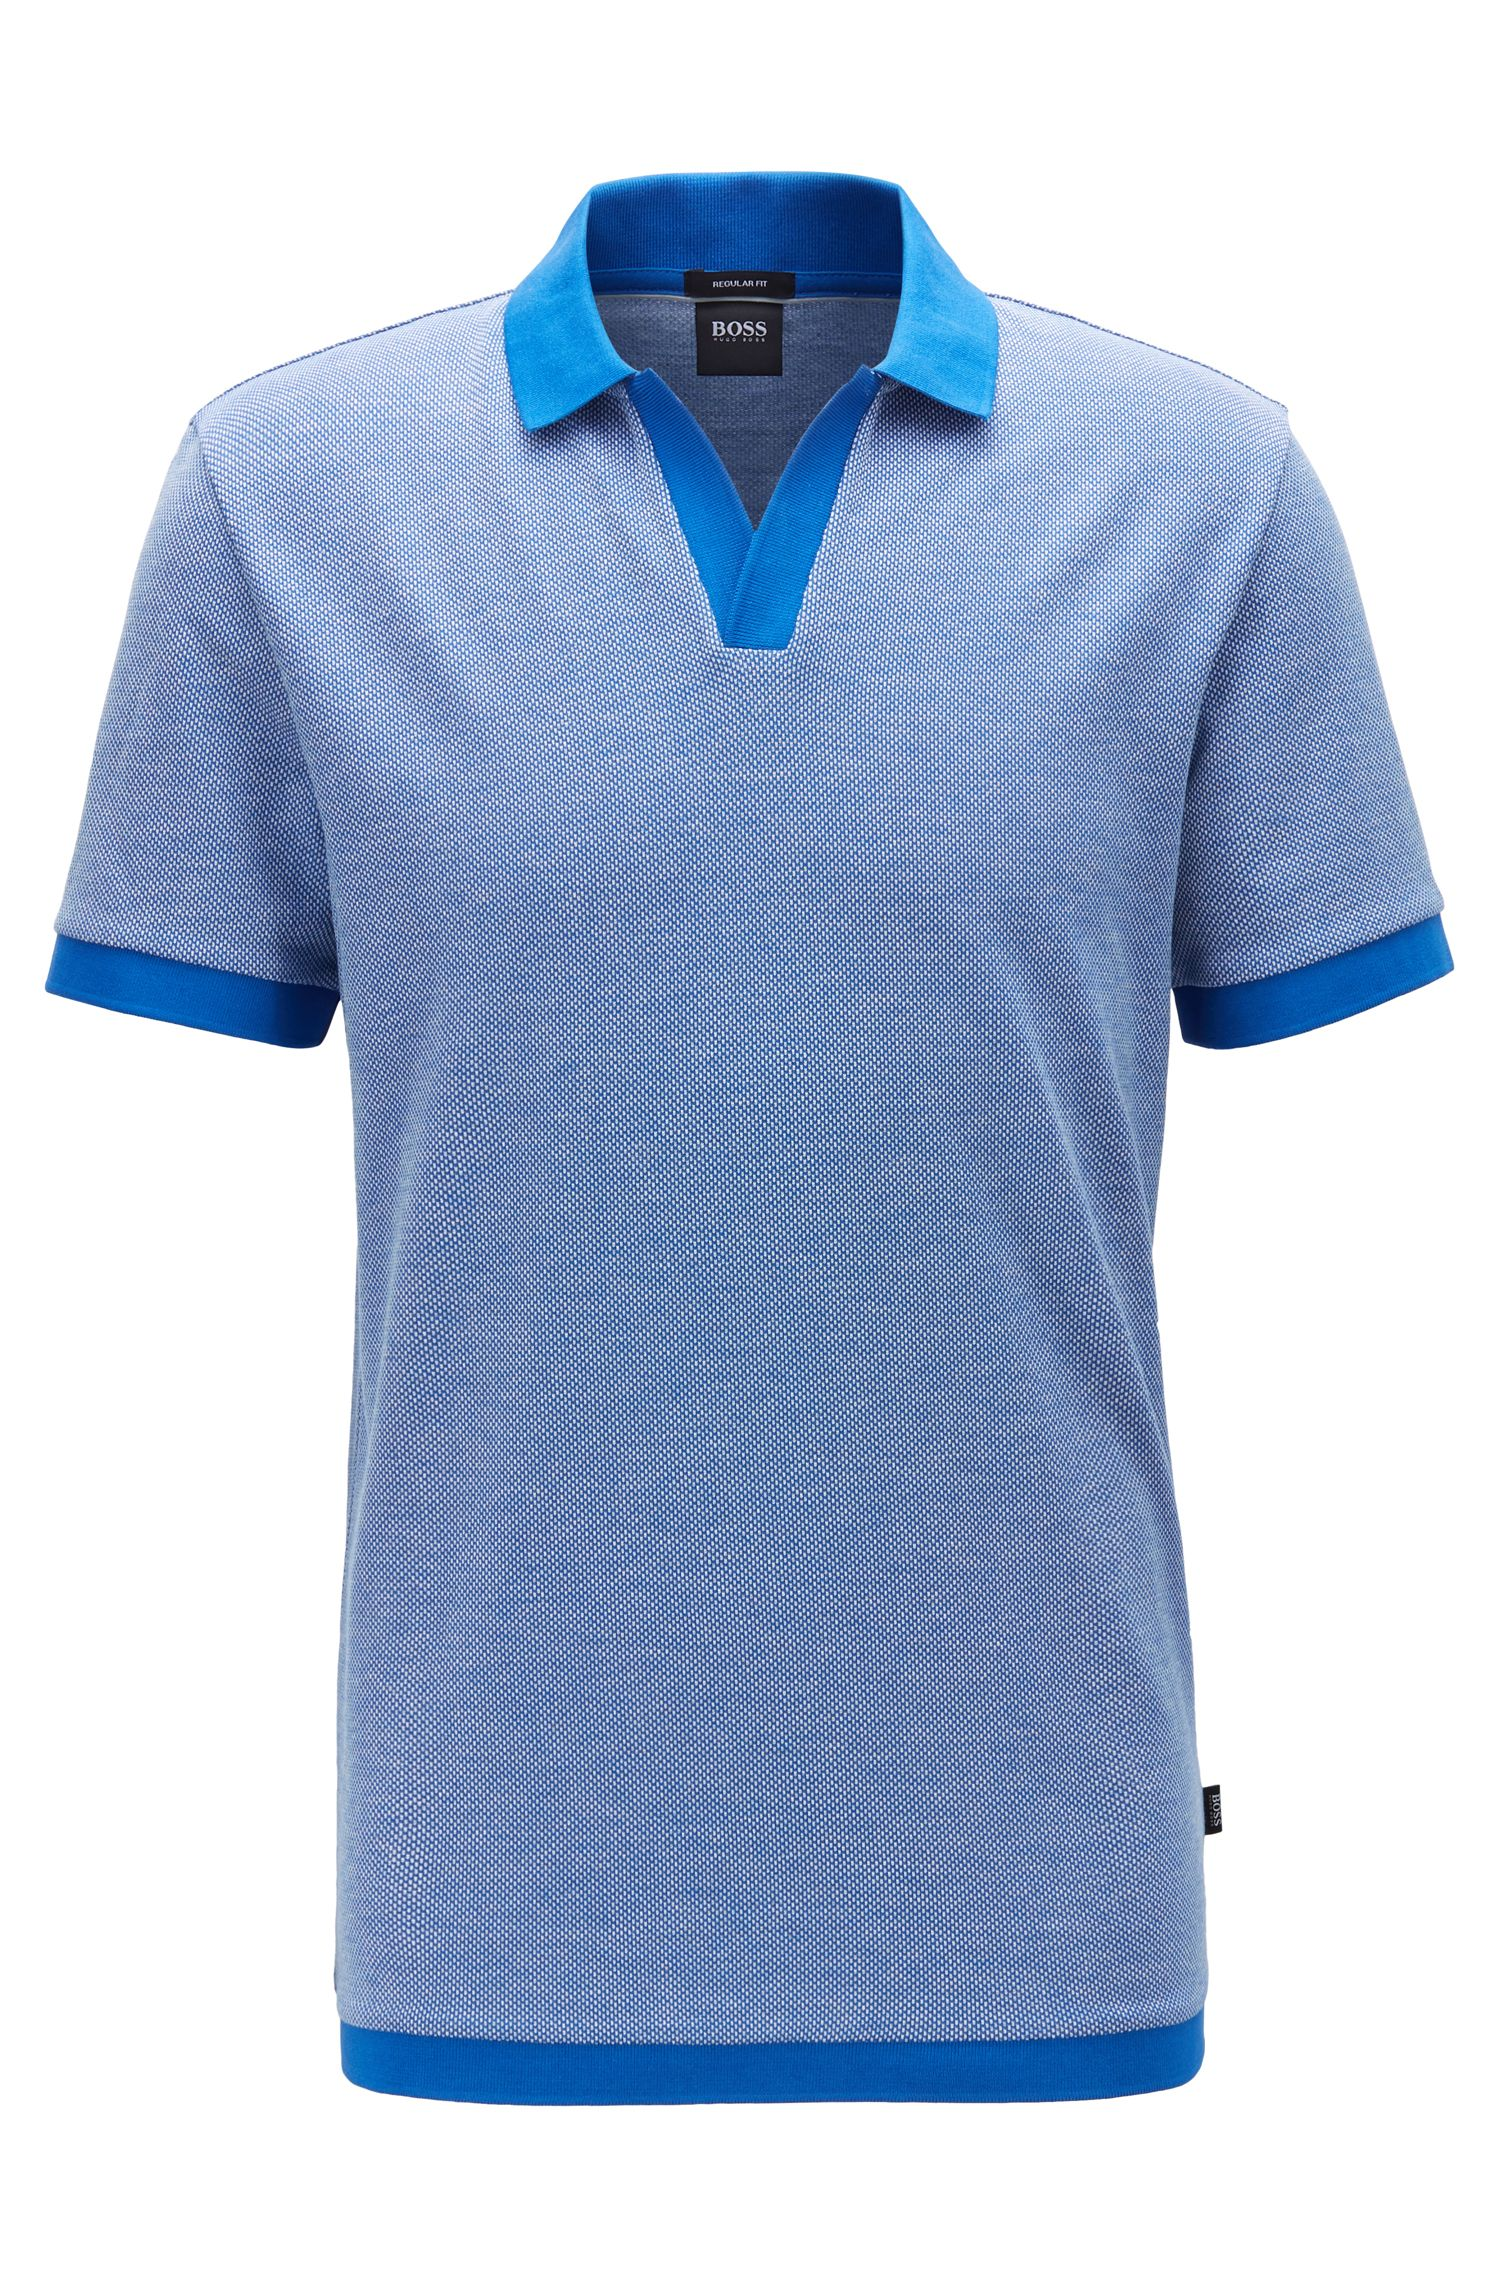 Cotton-jacquard polo shirt with Johnny collar, Blue